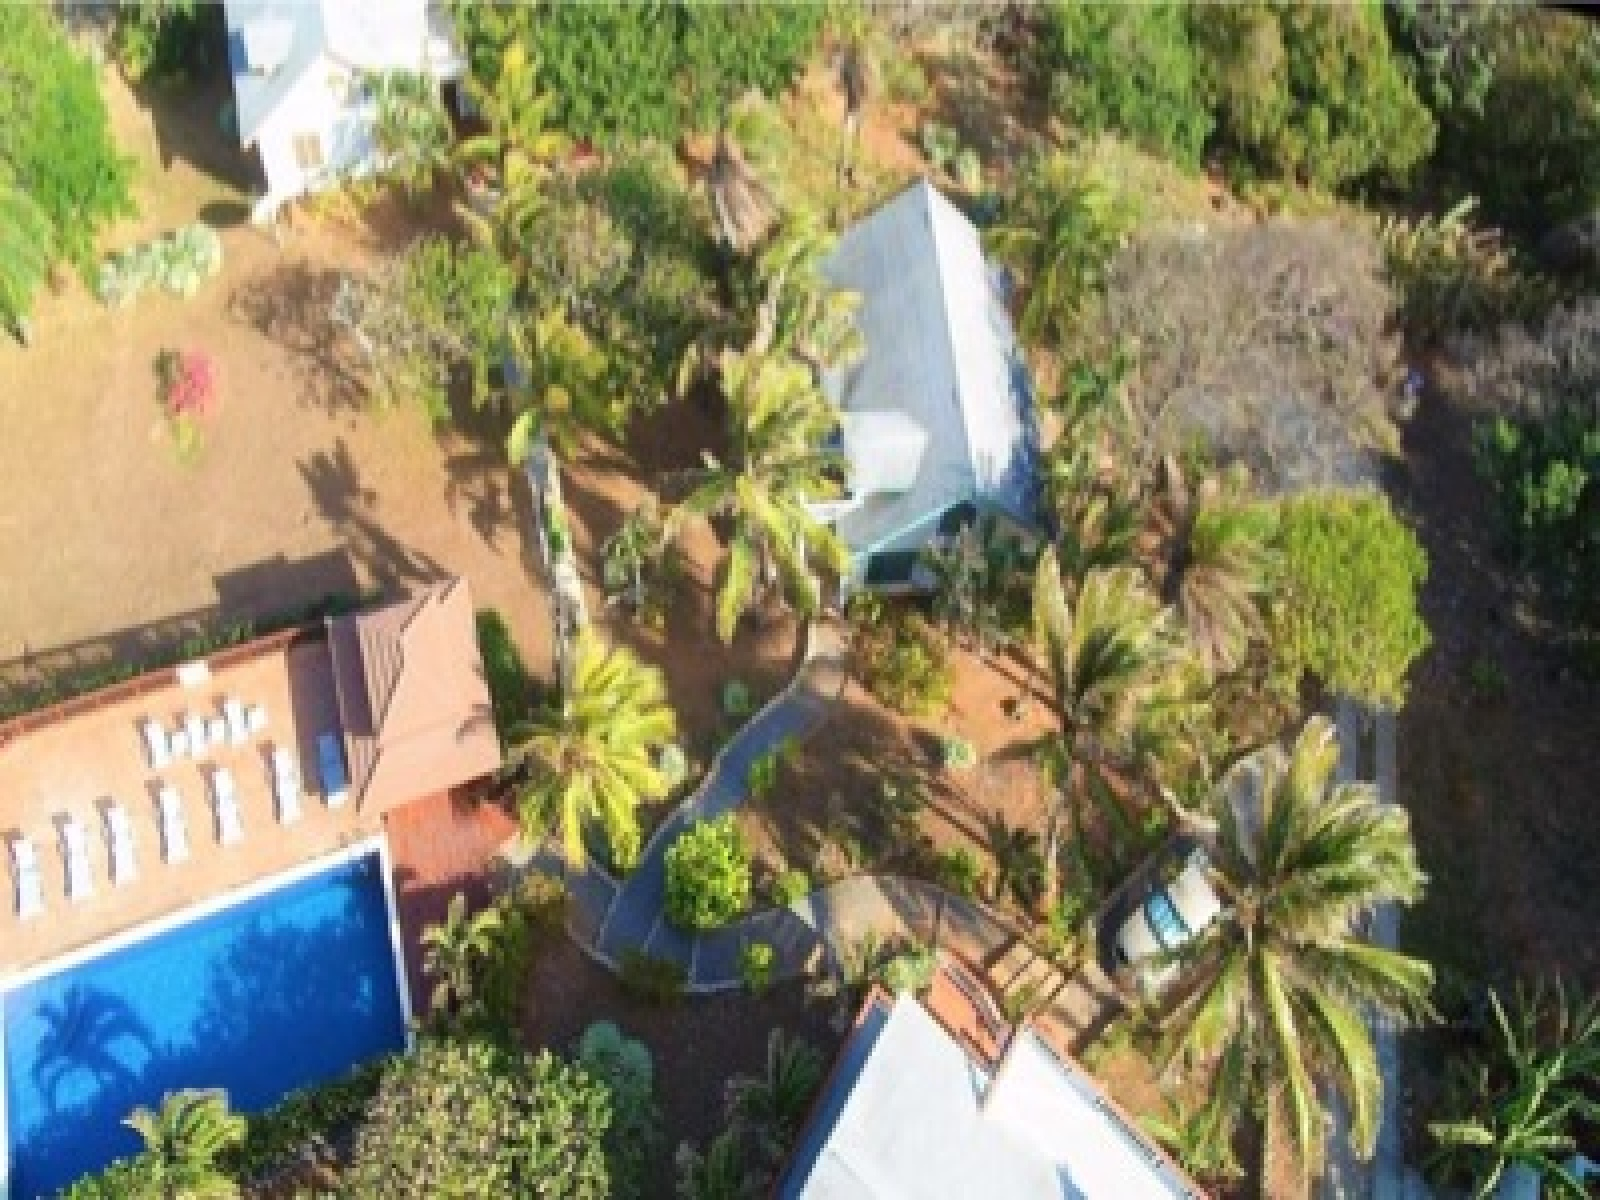 The home, right next to the pool, with meandering pathway through tropical greenery.